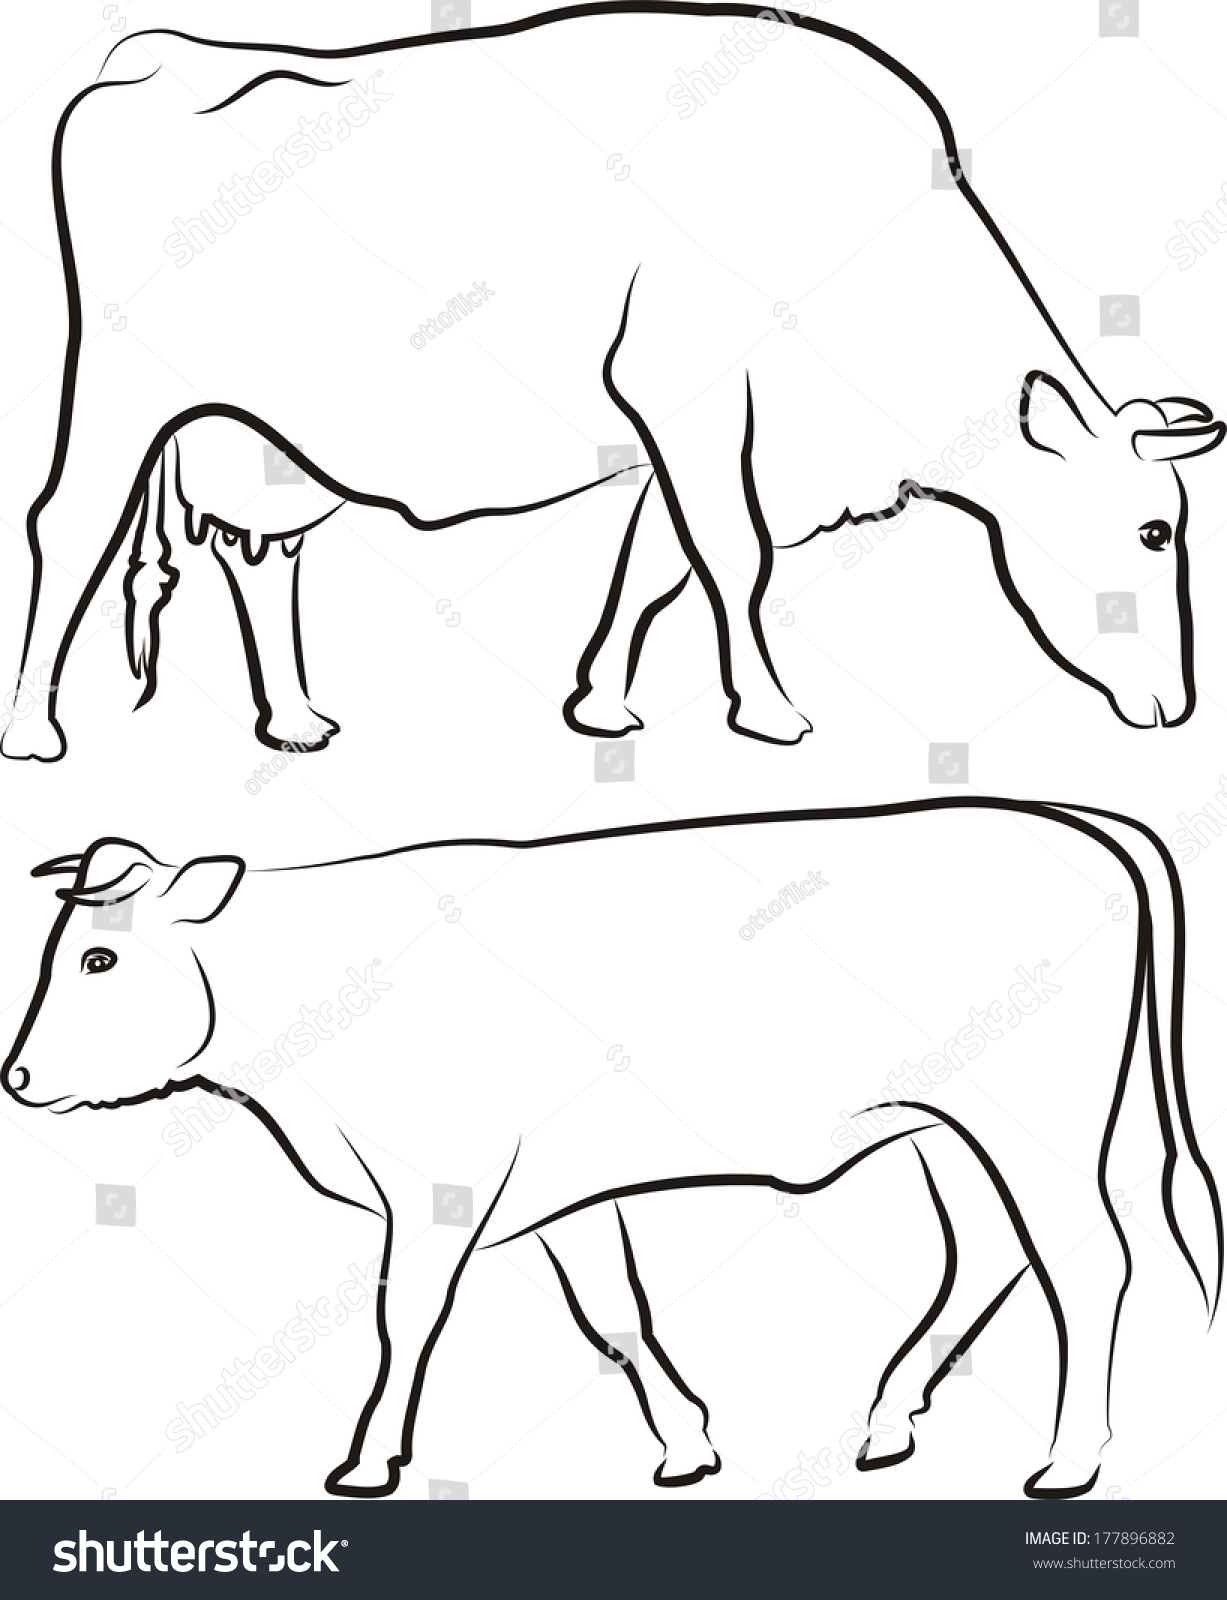 cow bull outlines stock vector royalty free 177896882 shutterstock